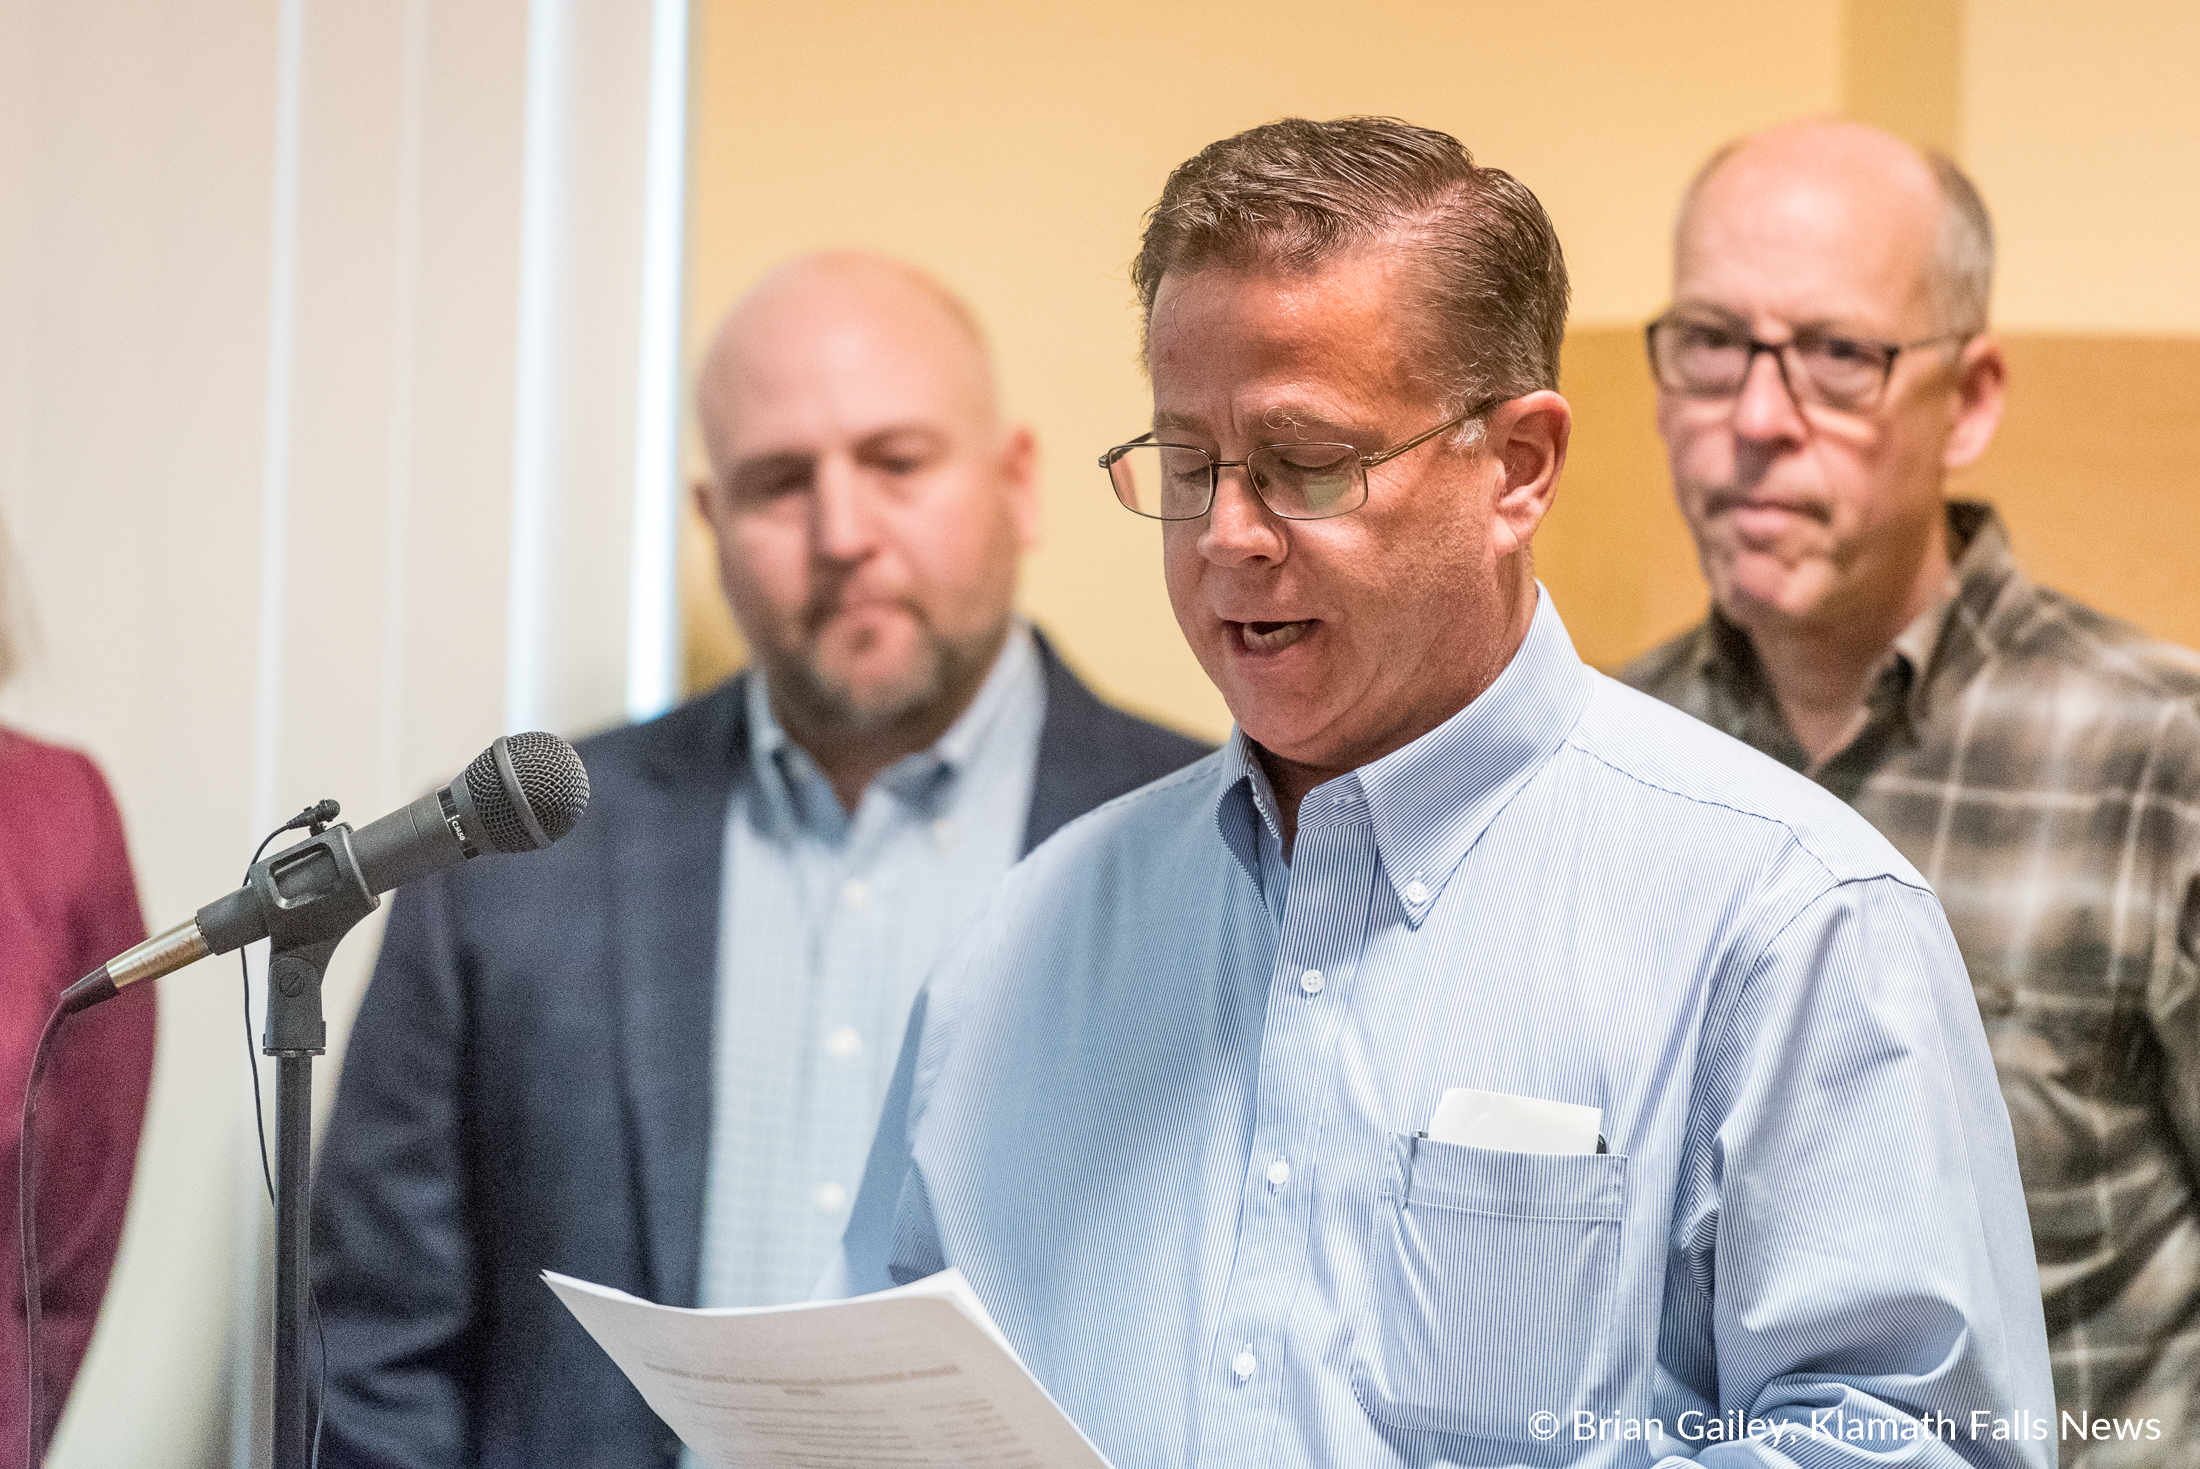 Commissioner Donnie Boyd reads a statement on behalf of the Klamath County Commissioners. During a press conference when Congressman Walden Announces Klamath Infrastructure Improvement Act to a standing room only crowd at the Klamath County Chamber of Commerce. (Brian Gailey)